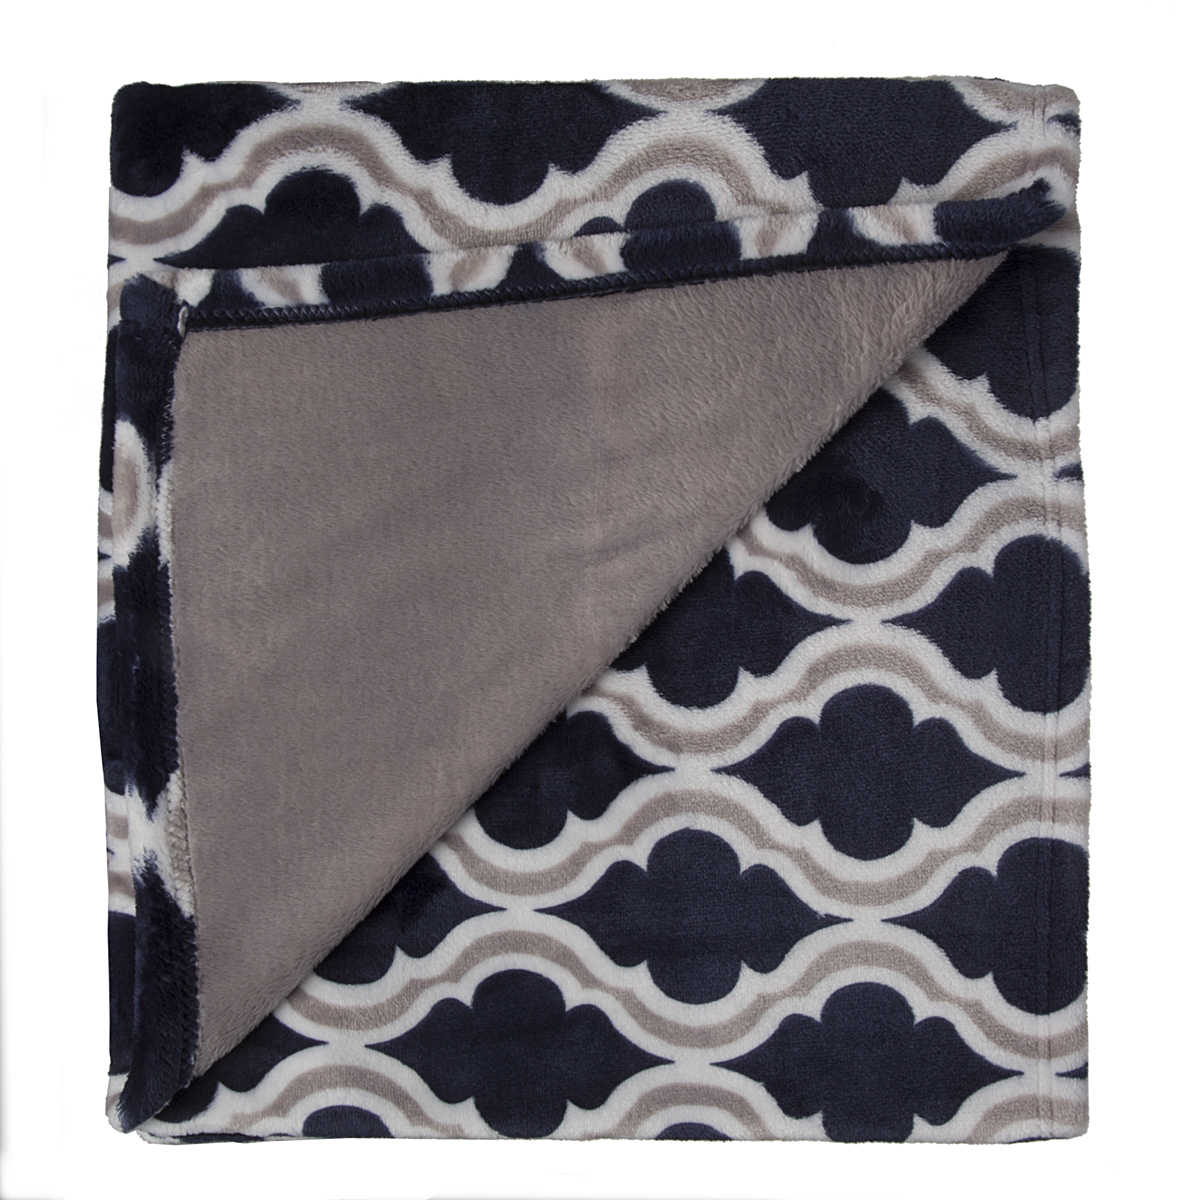 Crestwood soft plush luxe fleece 50 x 60 reversible throw for Soft blankets and throws